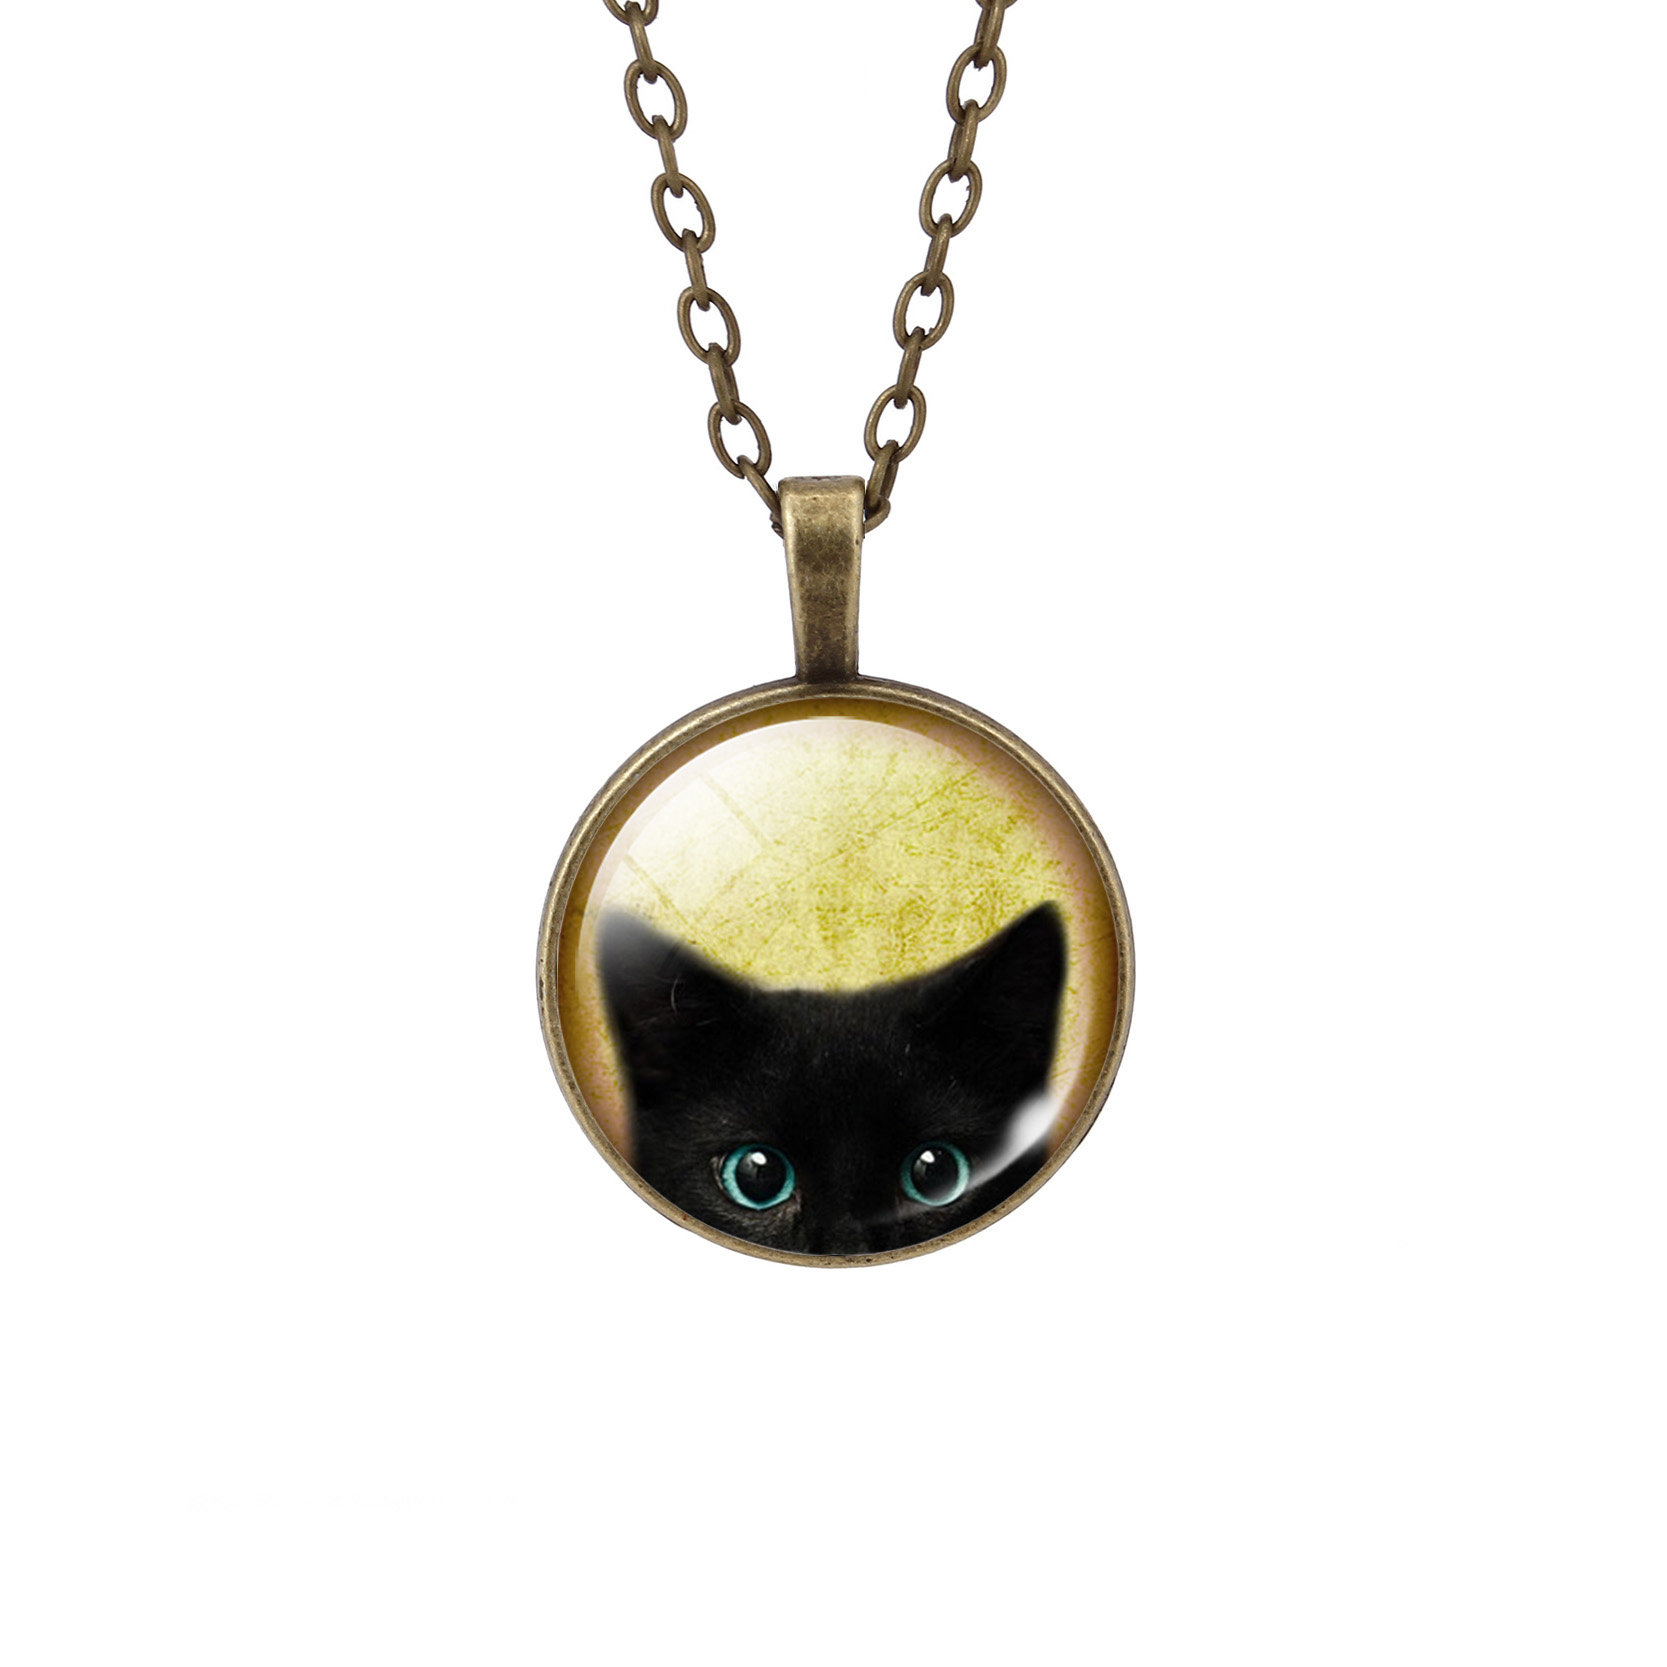 UNIQUE NECKLACE GLASS CABOCHON-SILVER BRONZE CHAIN NECKLACE BLACK CAT PICTURE VINTAGE PENDANT NECKLACE UNIQUE NECKLACE GLASS CABOCHON-SILVER BRONZE CHAIN NECKLACE BLACK CAT PICTURE VINTAGE PENDANT NECKLACE-Cat Jewelry-Free Shipping UNIQUE NECKLACE GLASS CABOCHON-SILVER BRONZE CHAIN NECKLACE BLACK CAT PICTURE VINTAGE PENDANT NECKLACE-Cat Jewelry-Free Shipping HTB1dwJOLXXXXXaEXpXXq6xXFXXXK